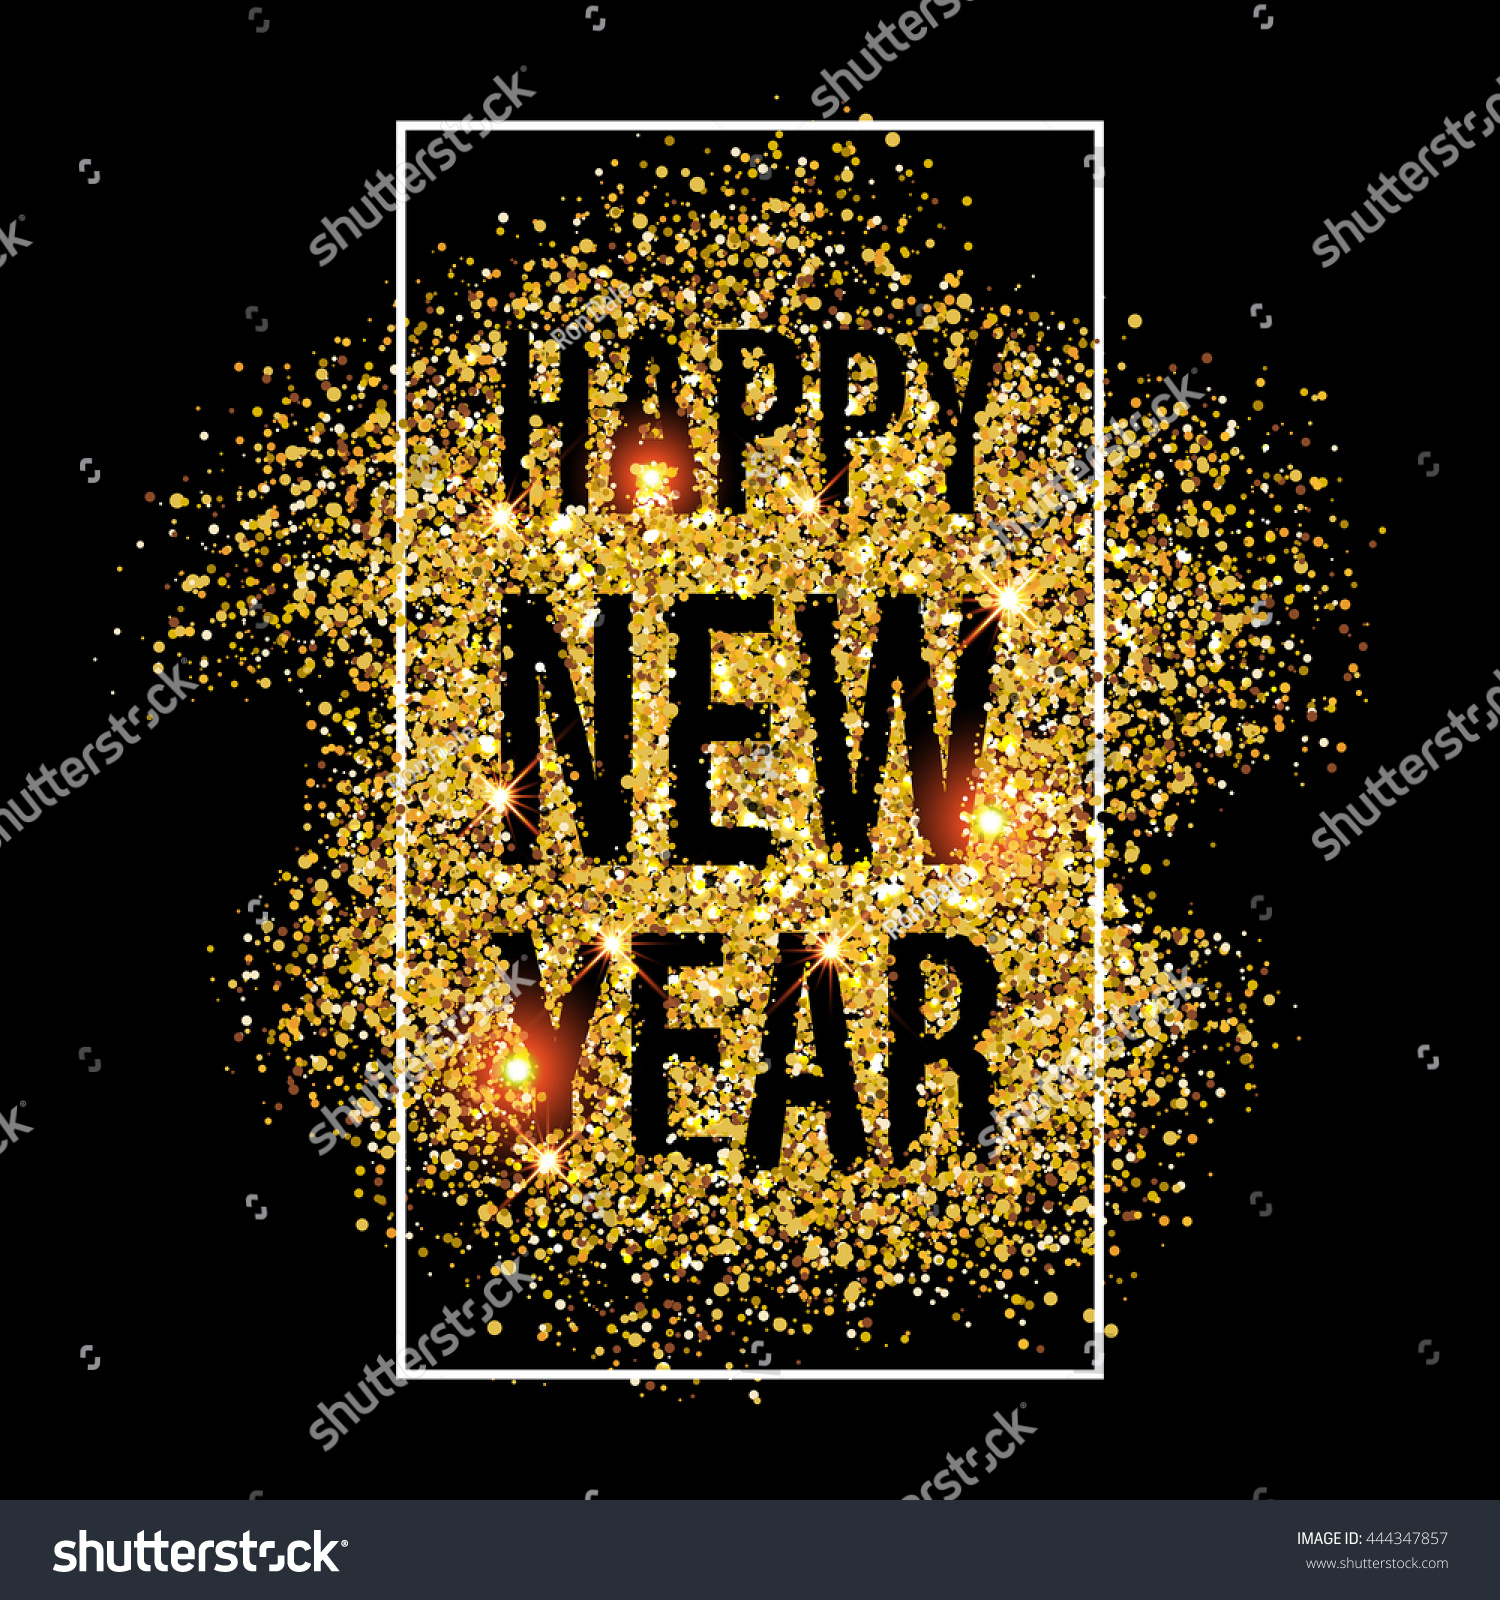 gold glitter happy new year 2018 background glittering texture gold sparkles with frame